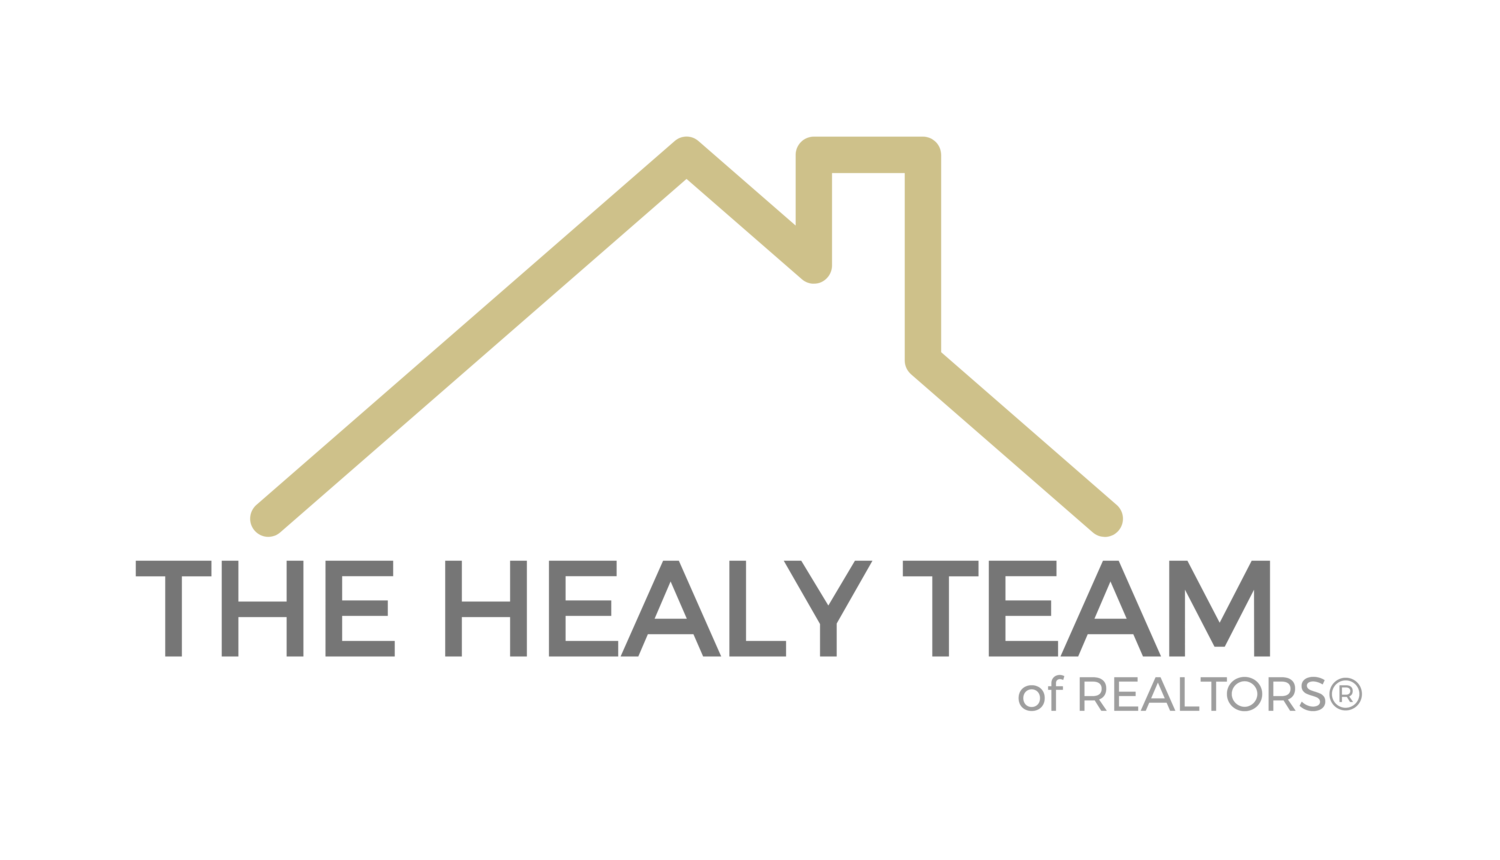 The Healy Team of Realtors